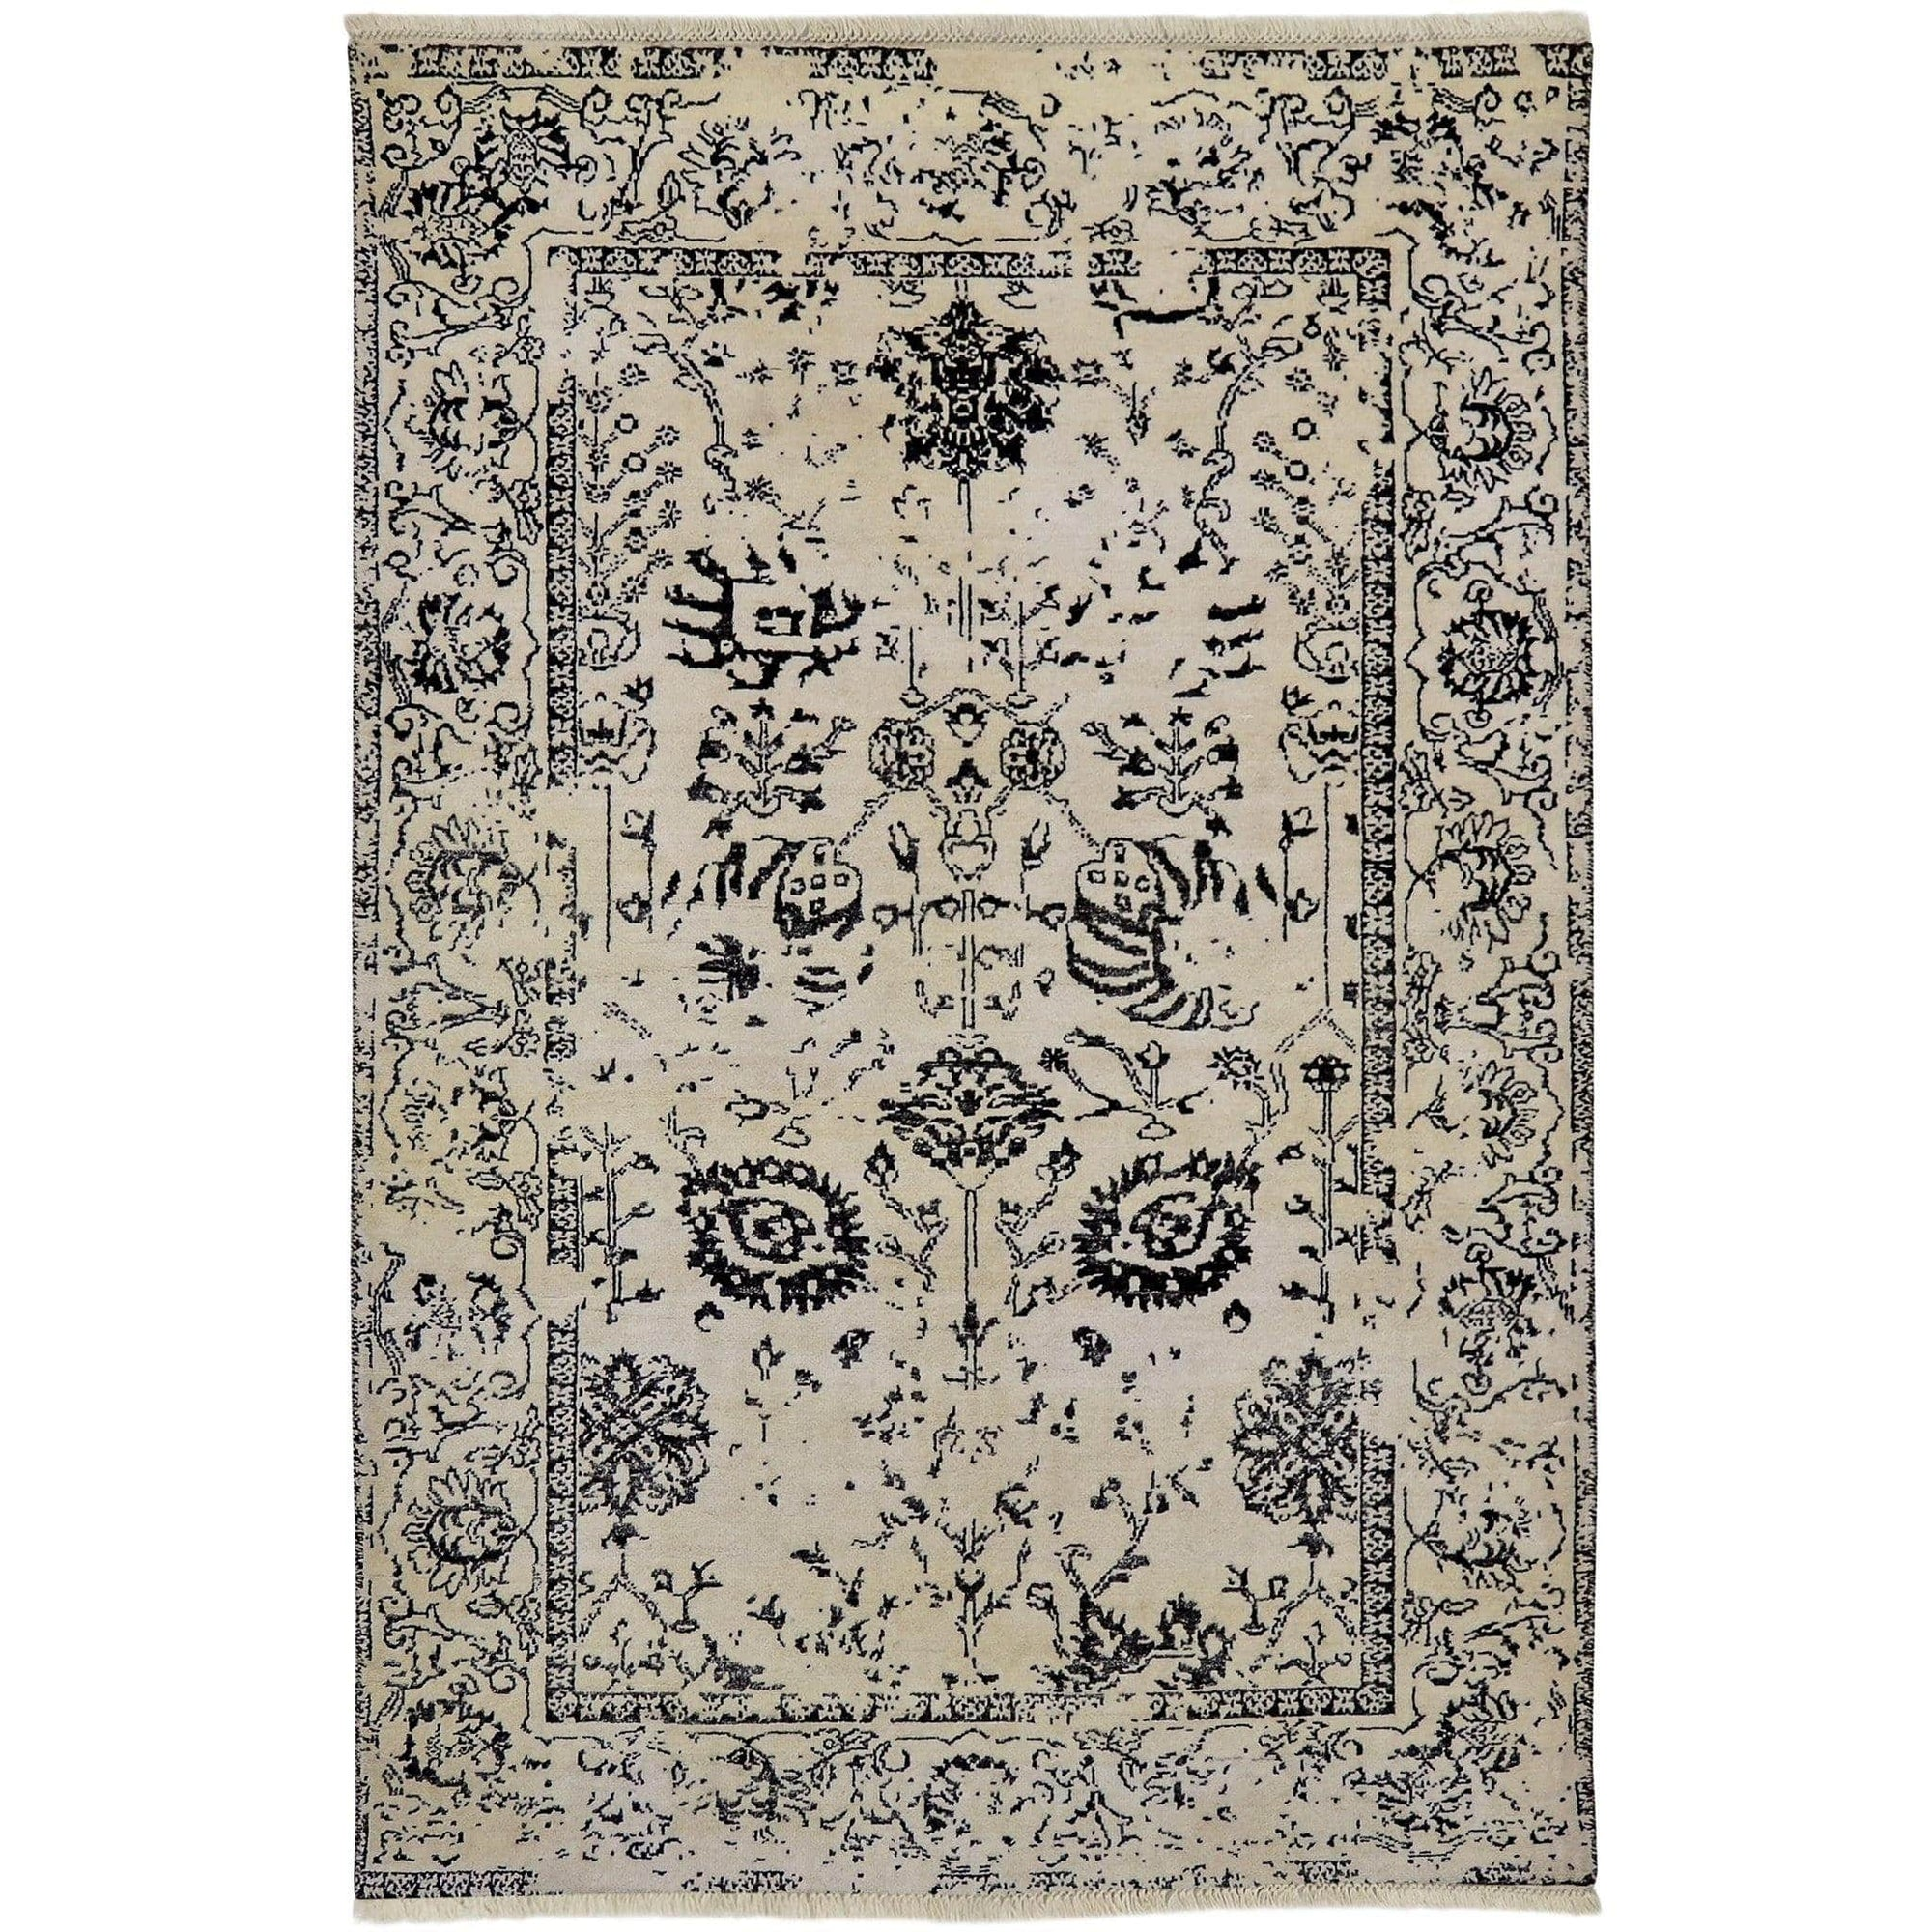 Fine Contemporary  Hand-knotted NZ Wool Rug 121cm x 188cm Persian-Rug | House-of-Haghi | NewMarket | Auckland | NZ | Handmade Persian Rugs | Hand Knotted Persian Rugs